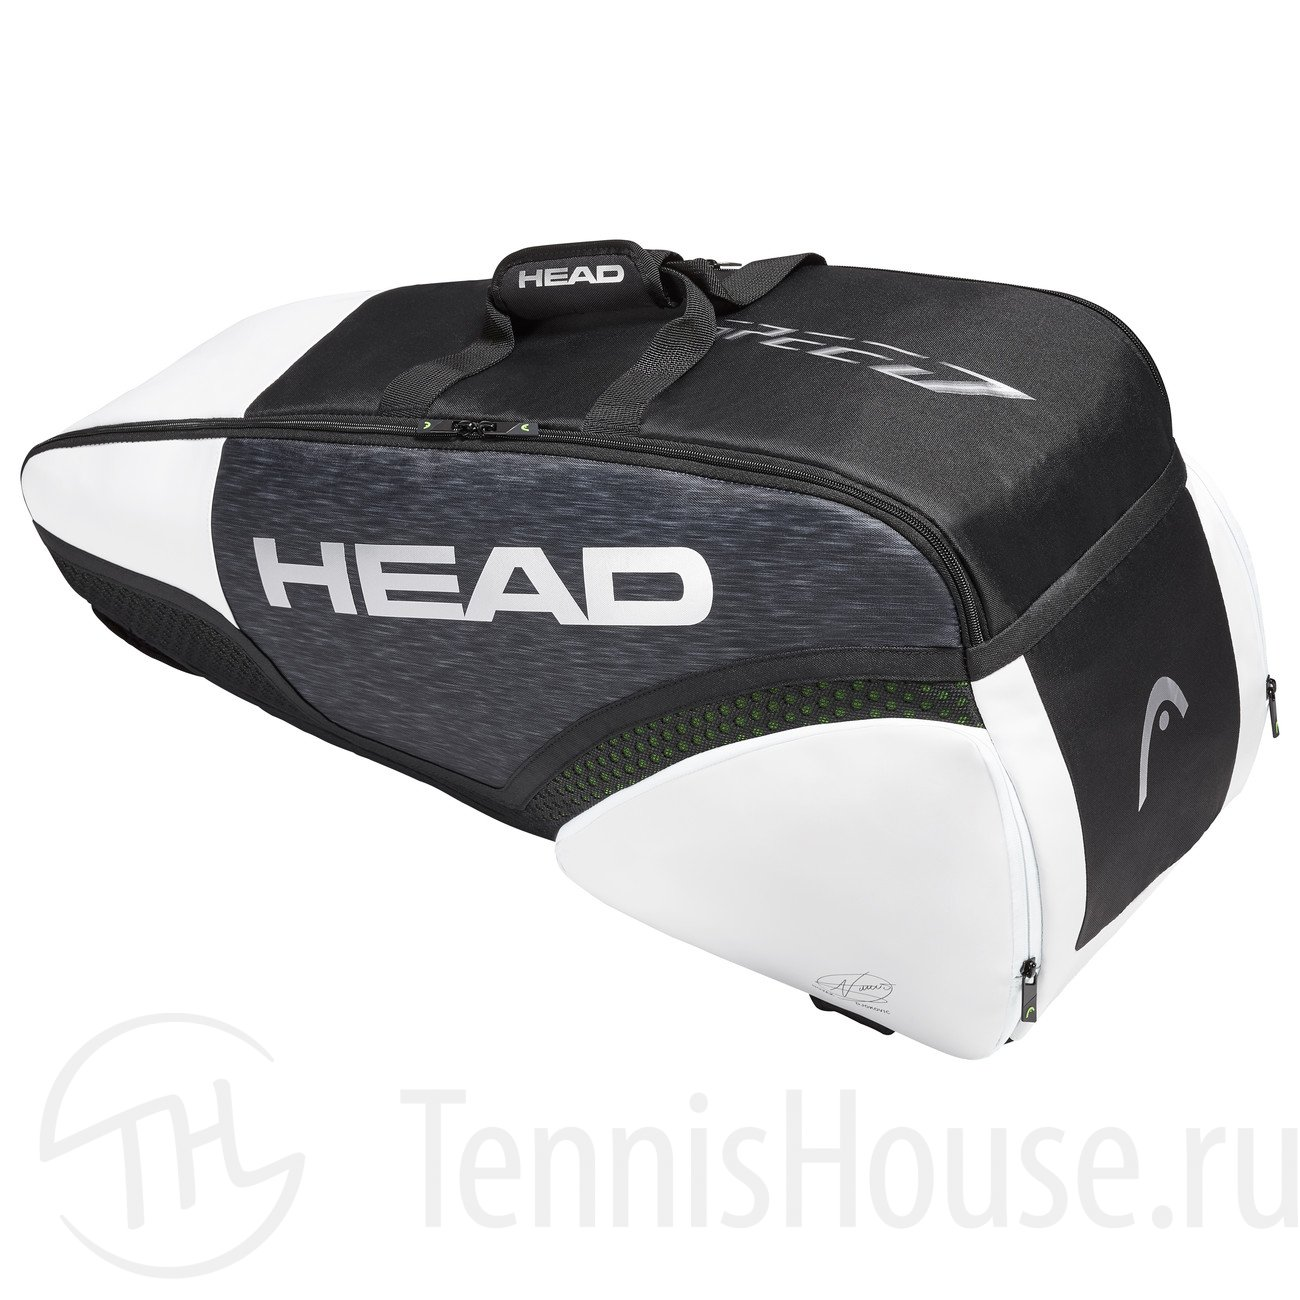 Сумка Head Djokovic Сombi 6R 283029